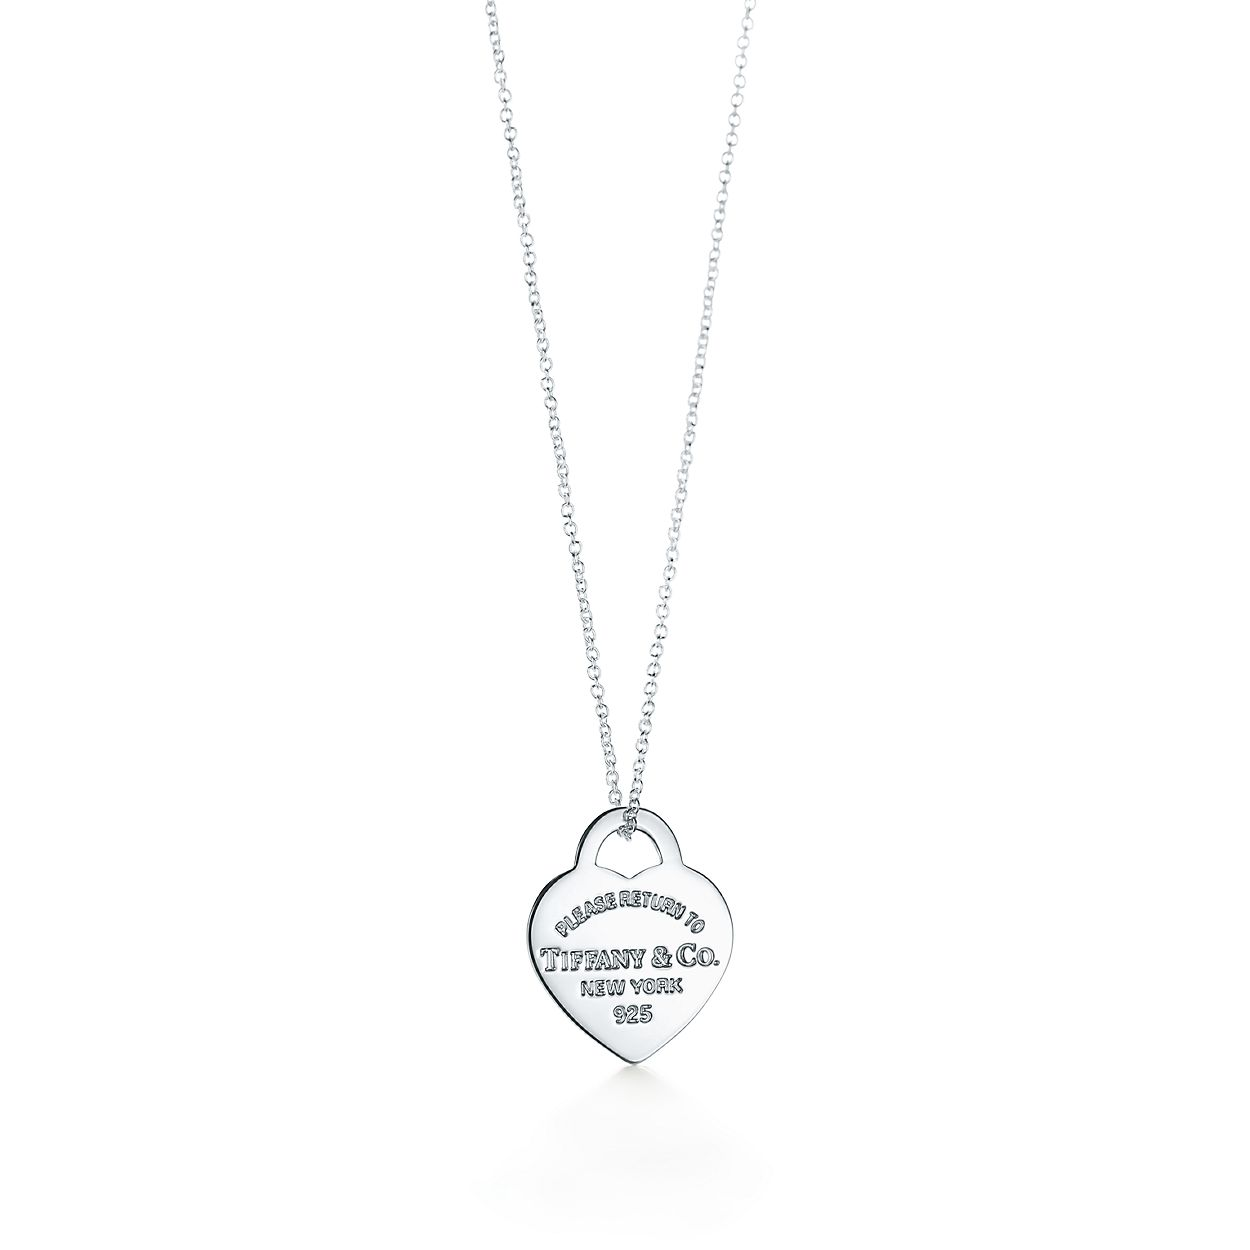 81d8c6684f Return to Tiffany® heart tag pendant in sterling silver, small ...